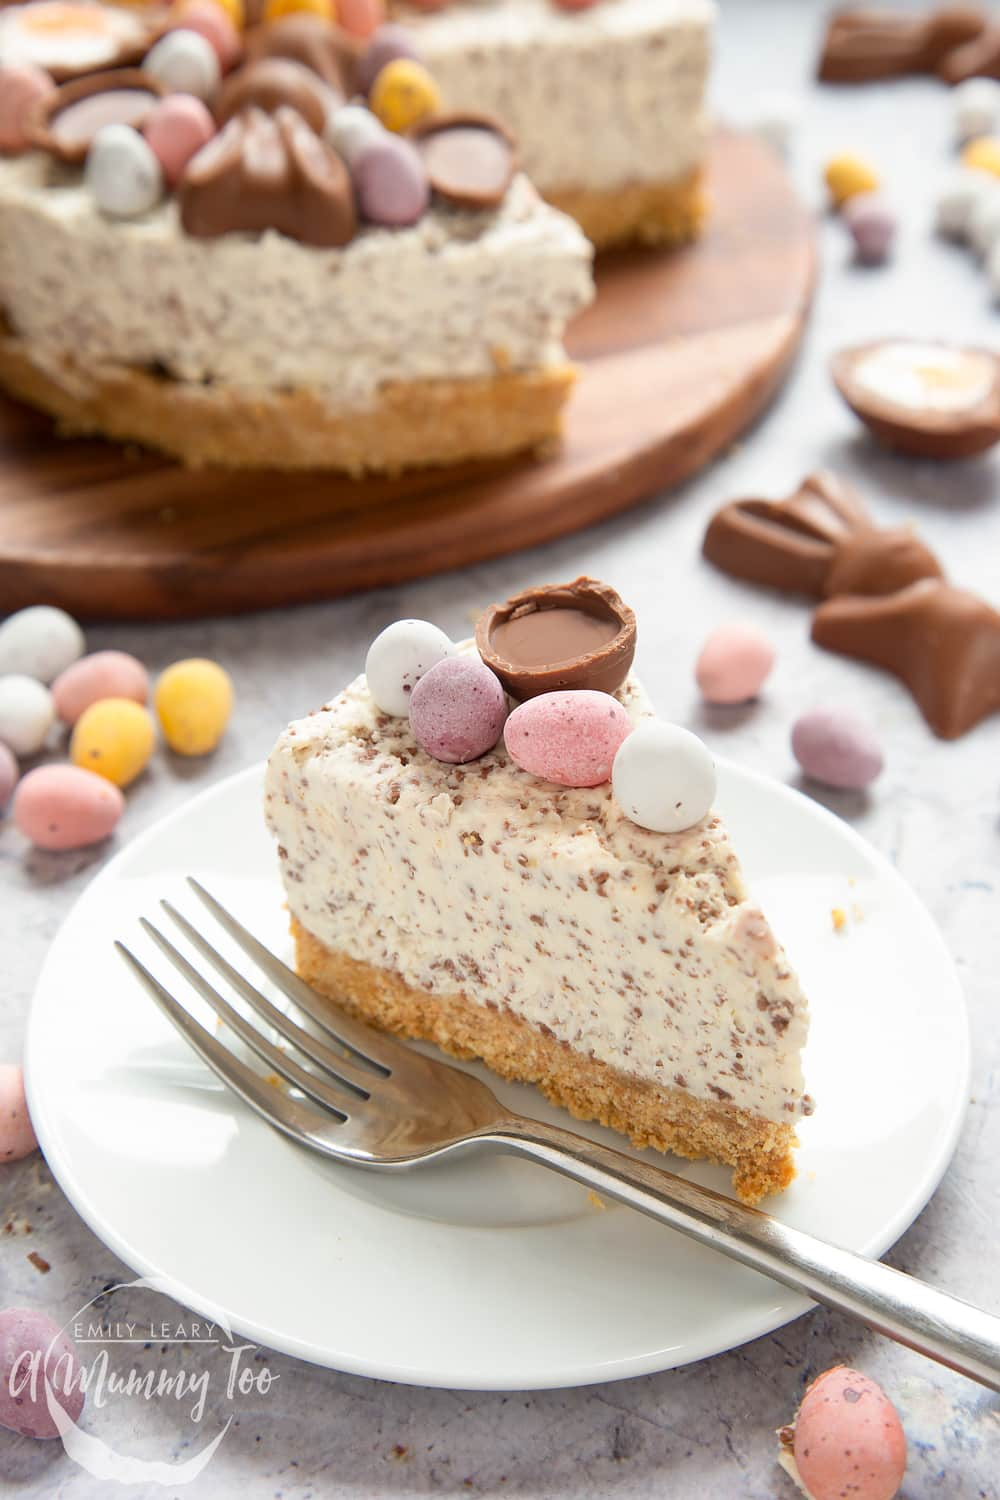 A slice of no-bake Easter cheesecake on a white plate with a fork beside it. The cheesecake is topped with mini chocolate eggs. More cheesecake is visible in the background.